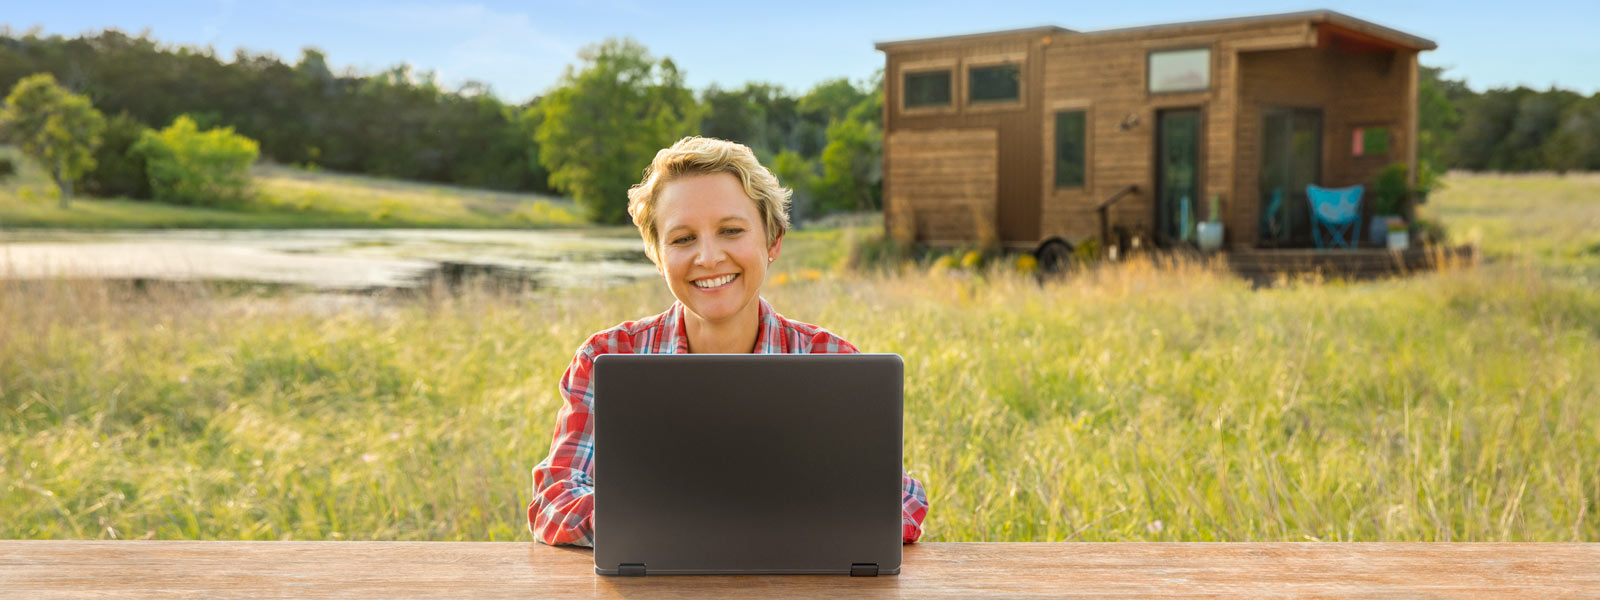 Woman sitting on a bench in the countryside enjoying her Always Connected PC